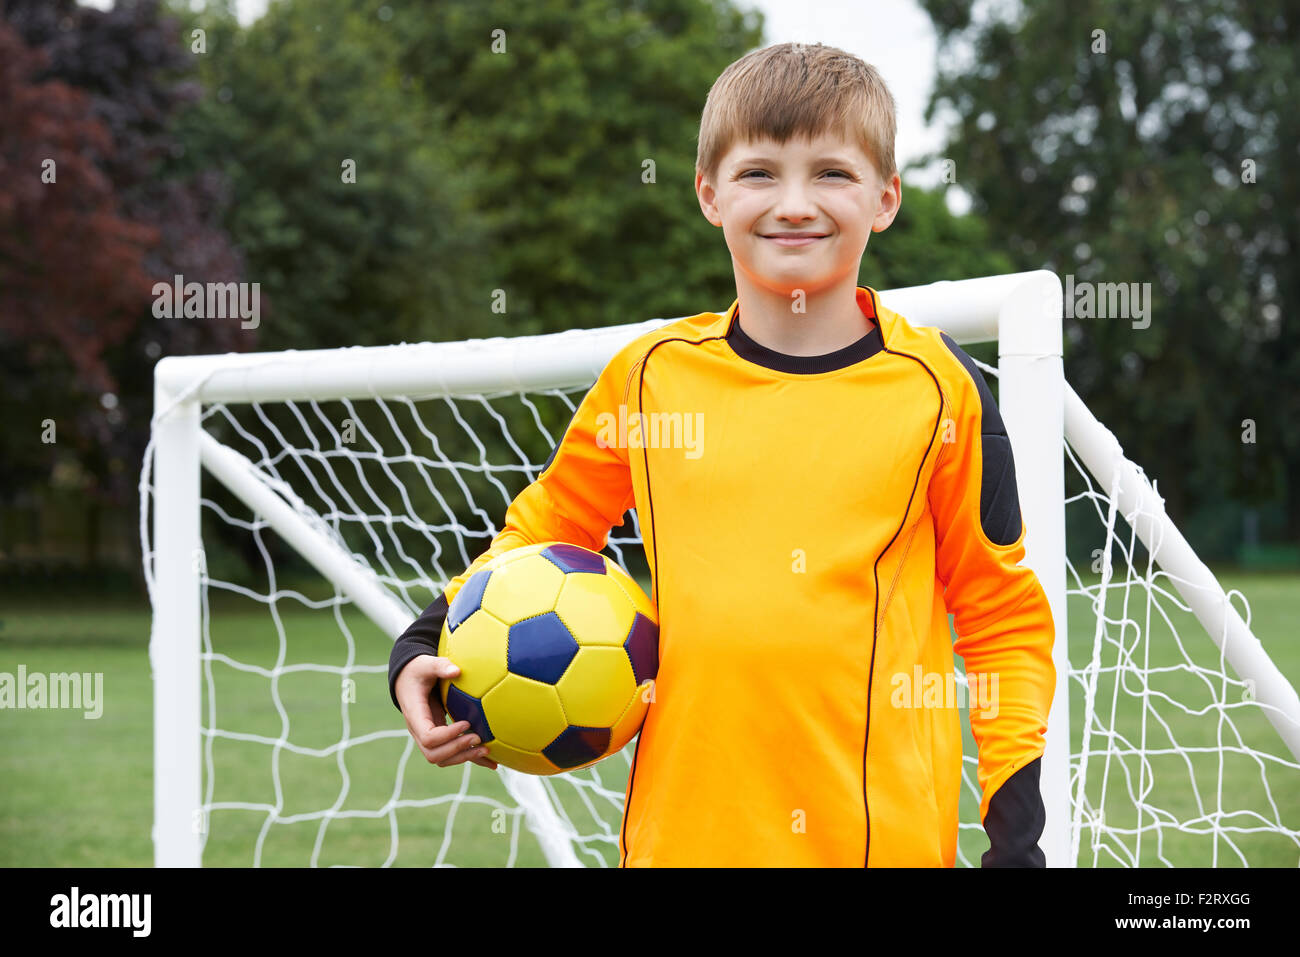 Portrait Of Goal Keeper Holding Ball On School Soccer Pitch - Stock Image